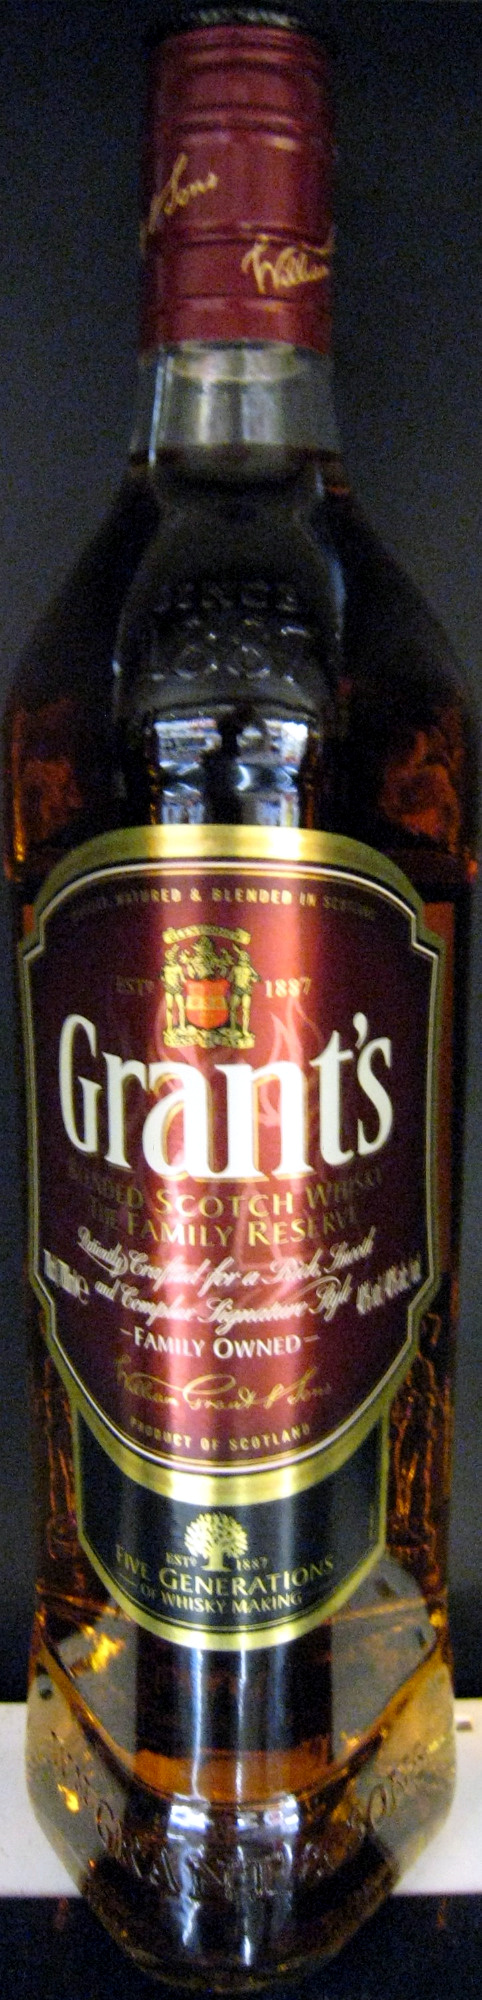 Grant's blended scotch wisky the family reserve 70 cl since 1887 - Product